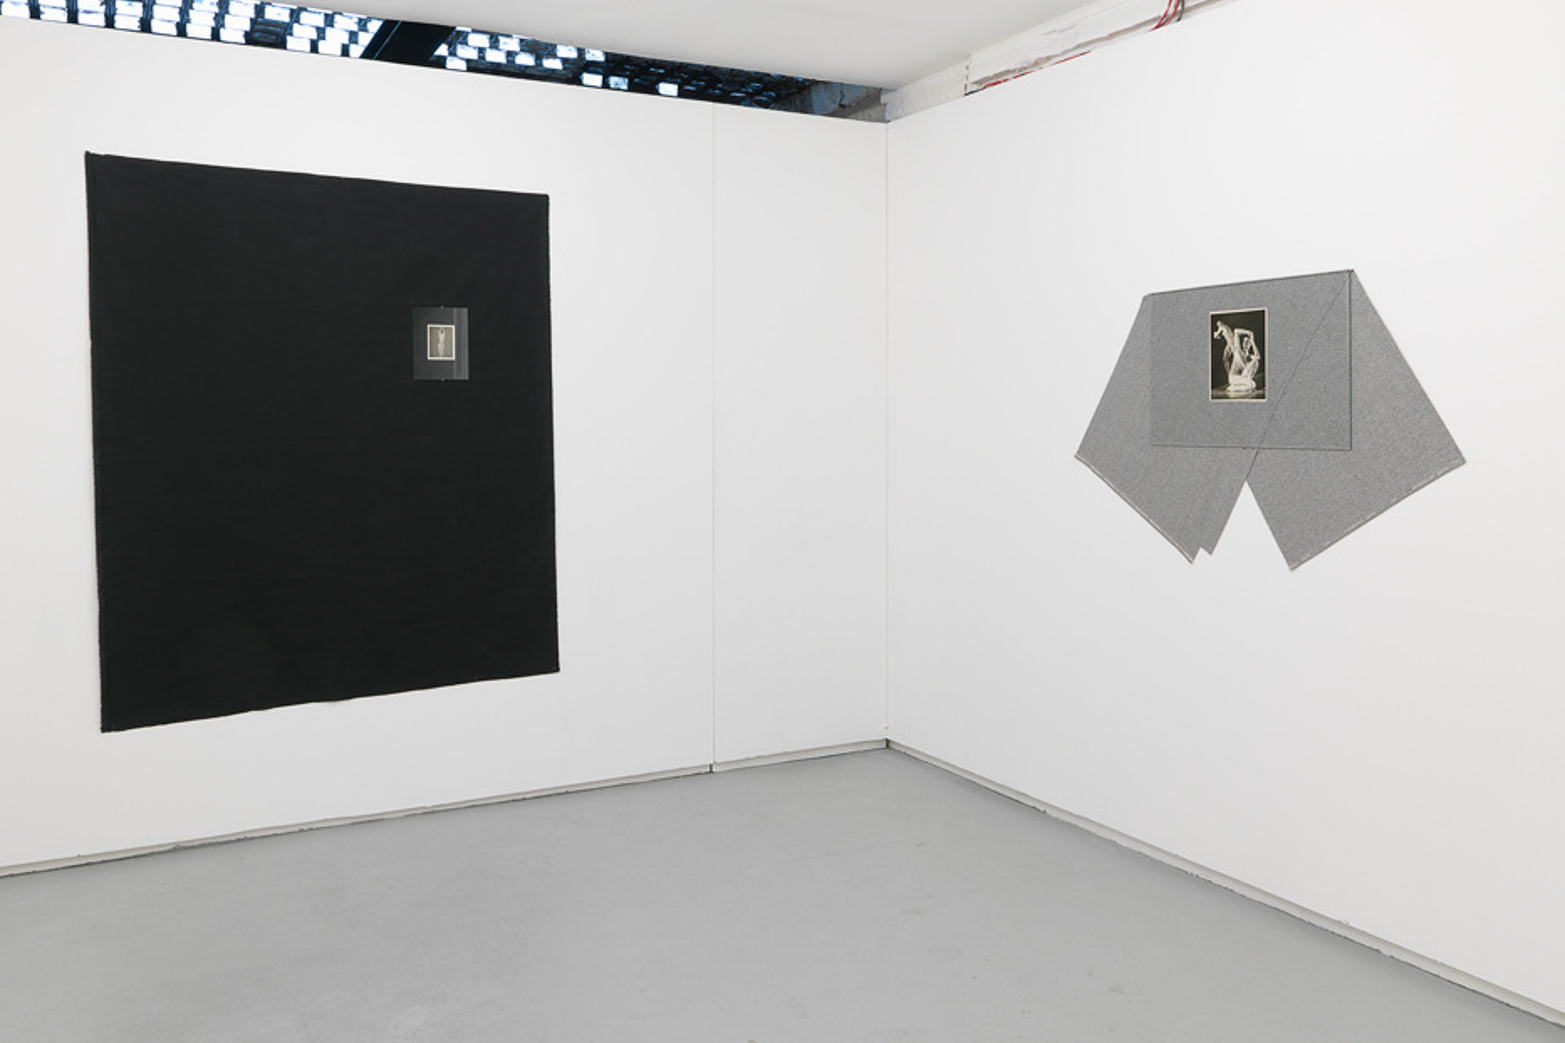 Jacopo Miliani, Folding Characters. Installation view. Tenderpixel.